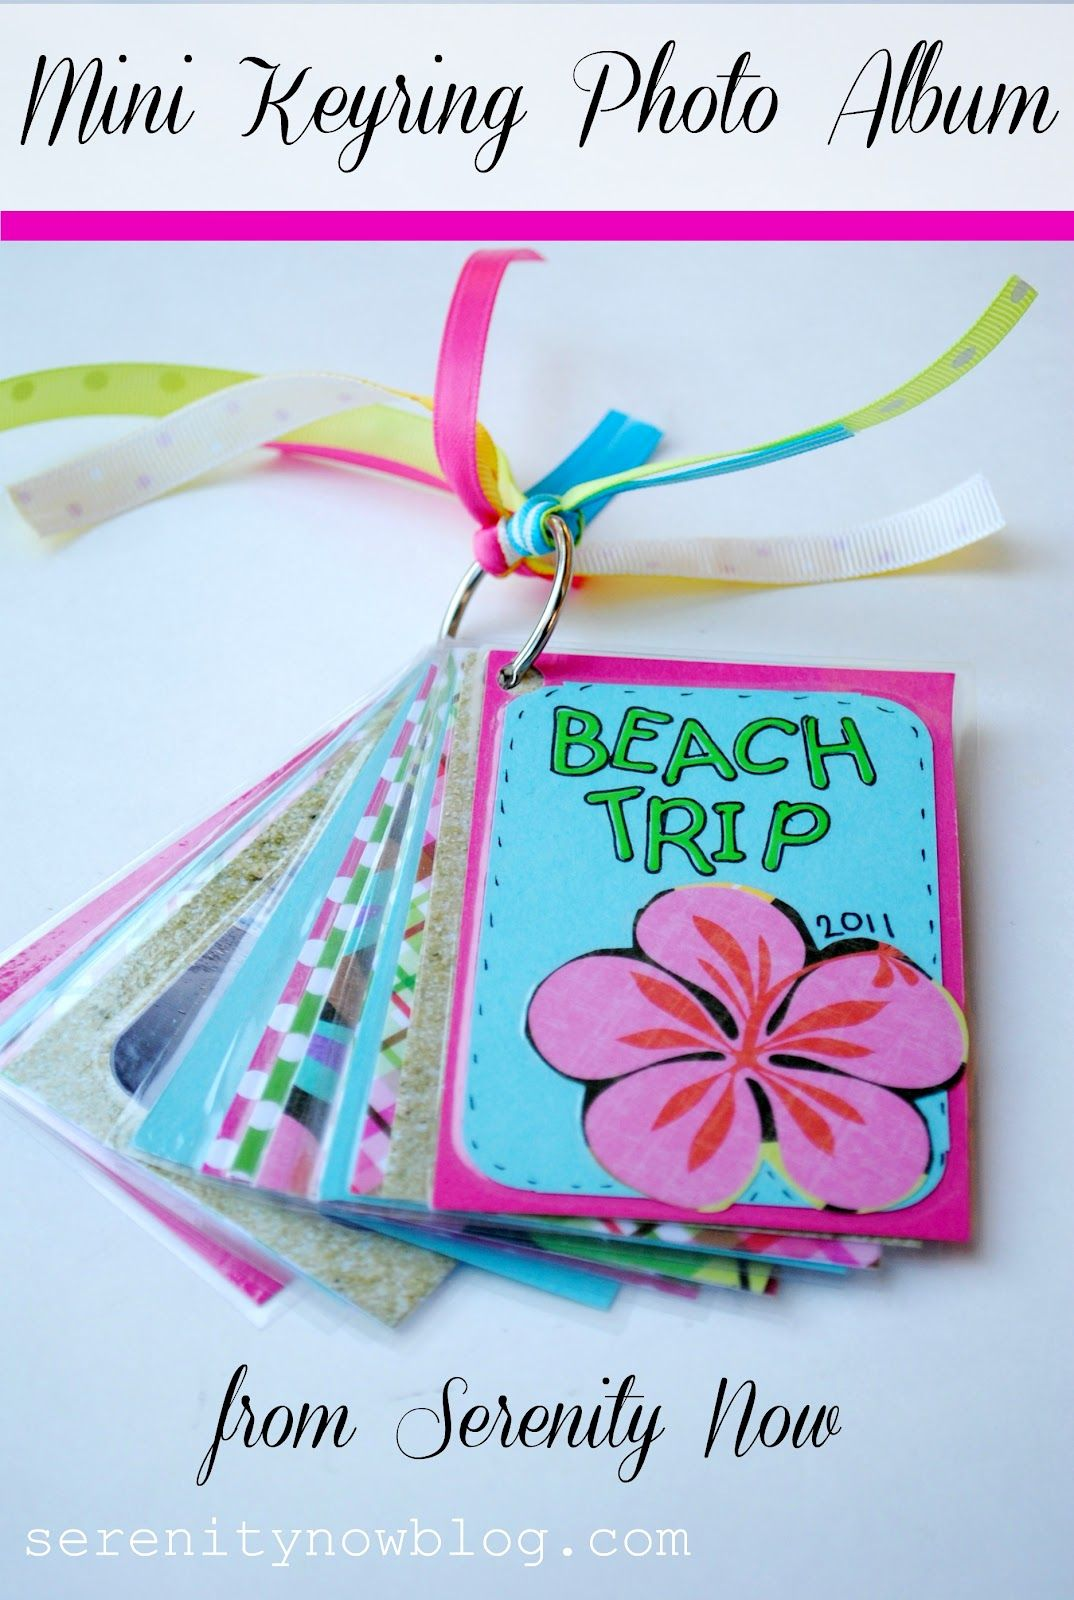 Mini keyring photo album craft from serenity now crafts